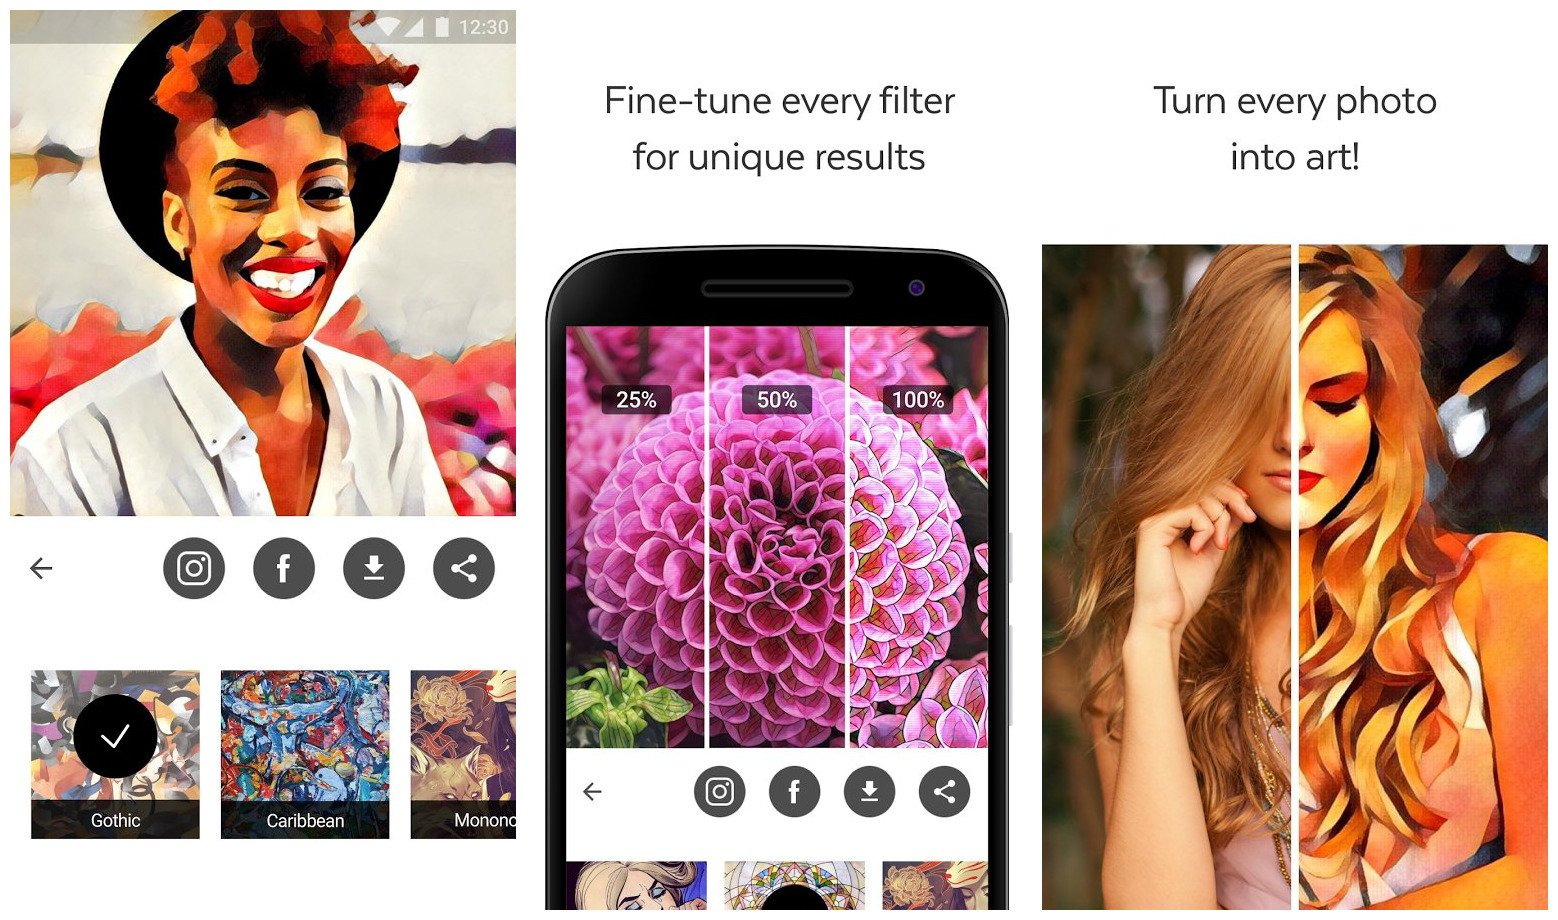 5 Best Photo Editing Apps For Android And Iphone To Create Unique Visual Effects As soon as we can find more official info we'll do their profile! 5 best photo editing apps for android